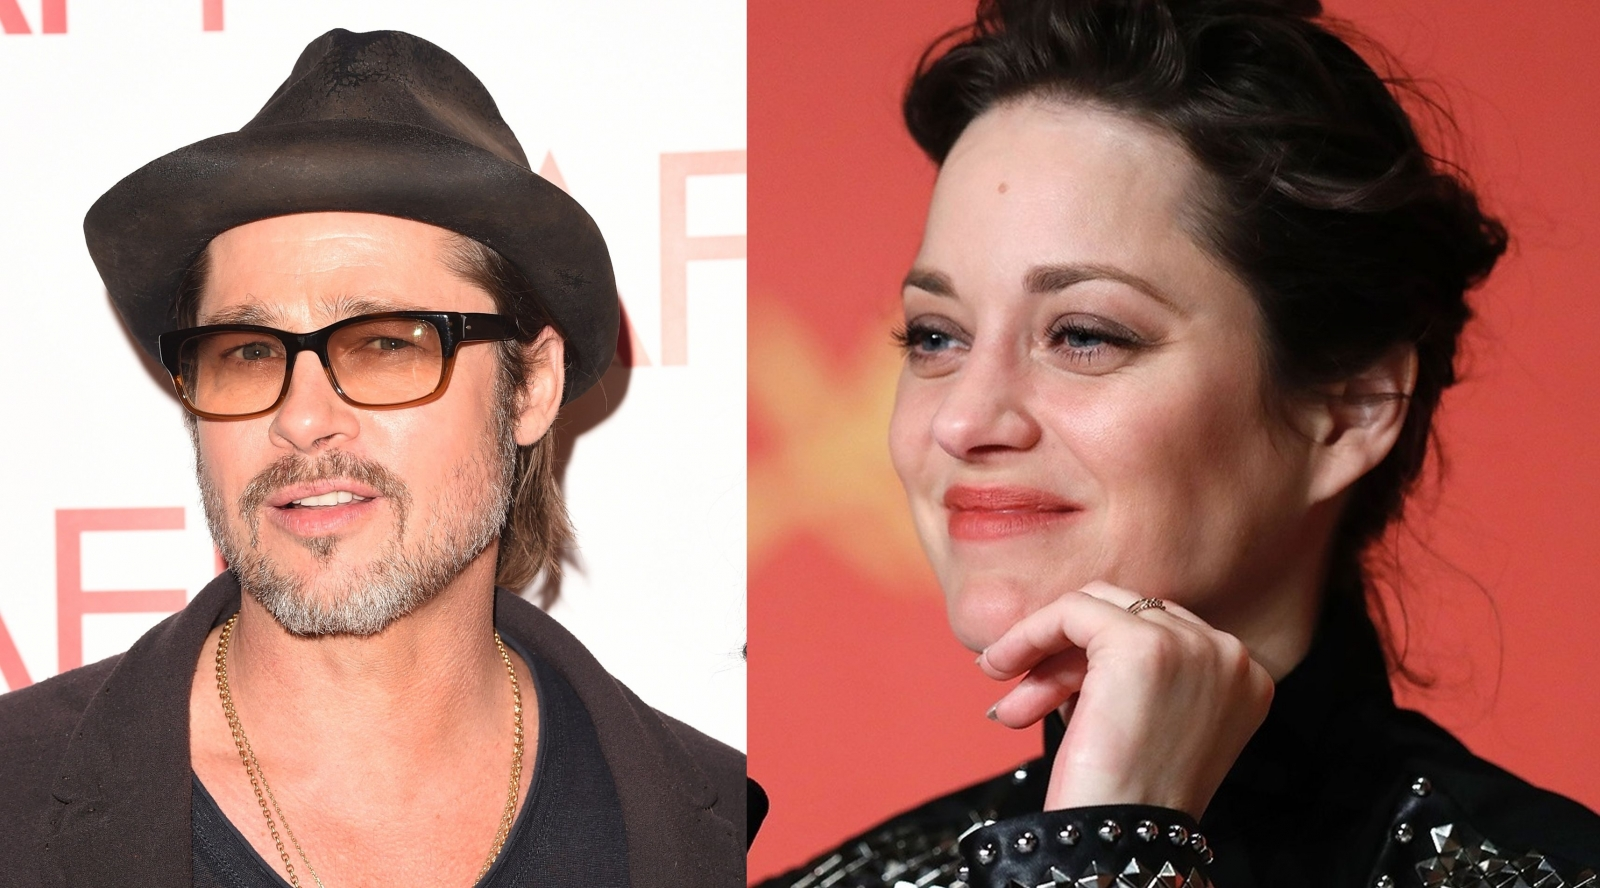 Brad Pitt and Marion Cotillard